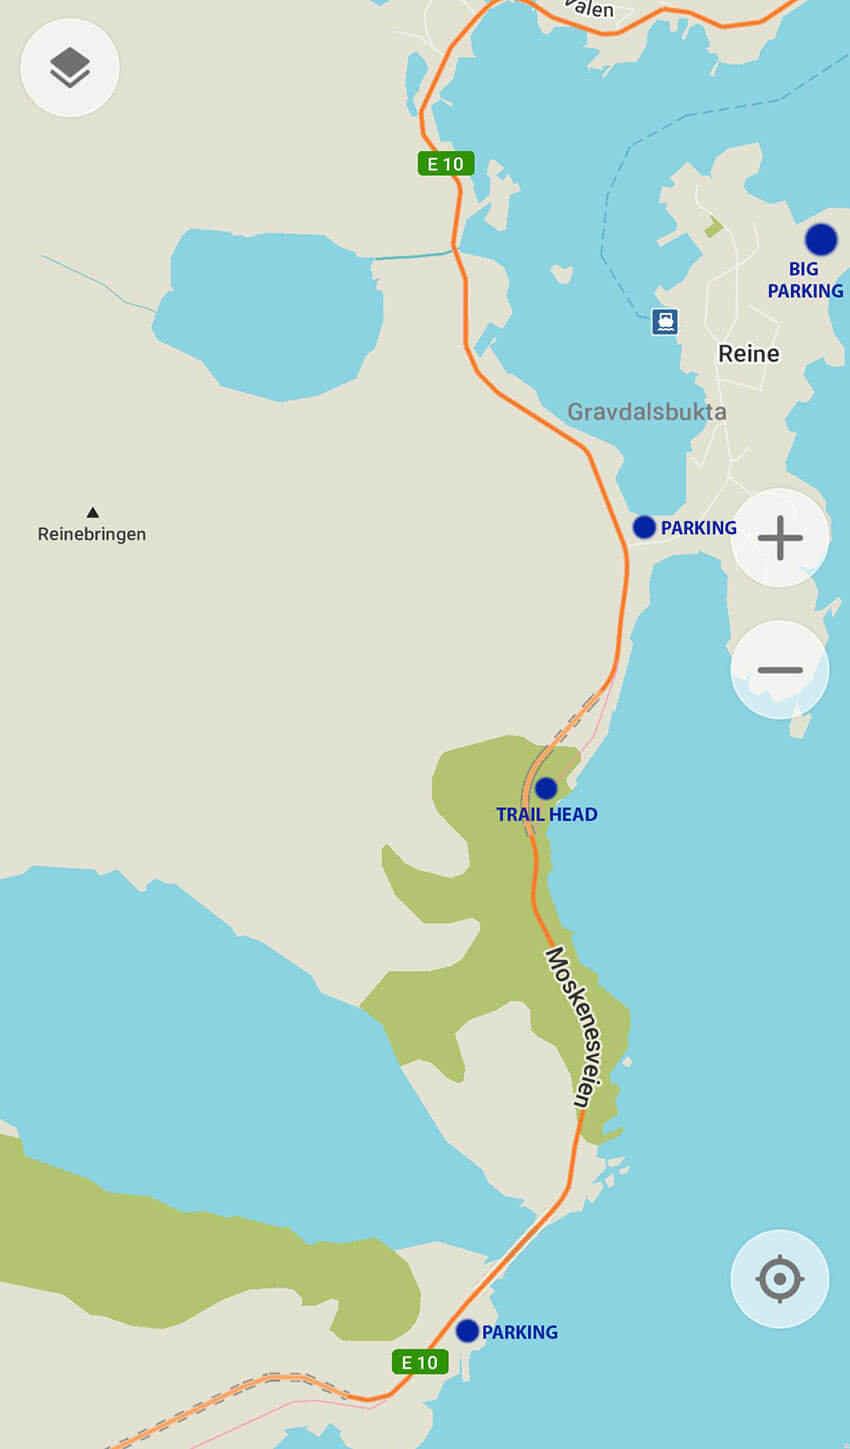 Reinebringen parking place map, Lofoten, Northern Norway